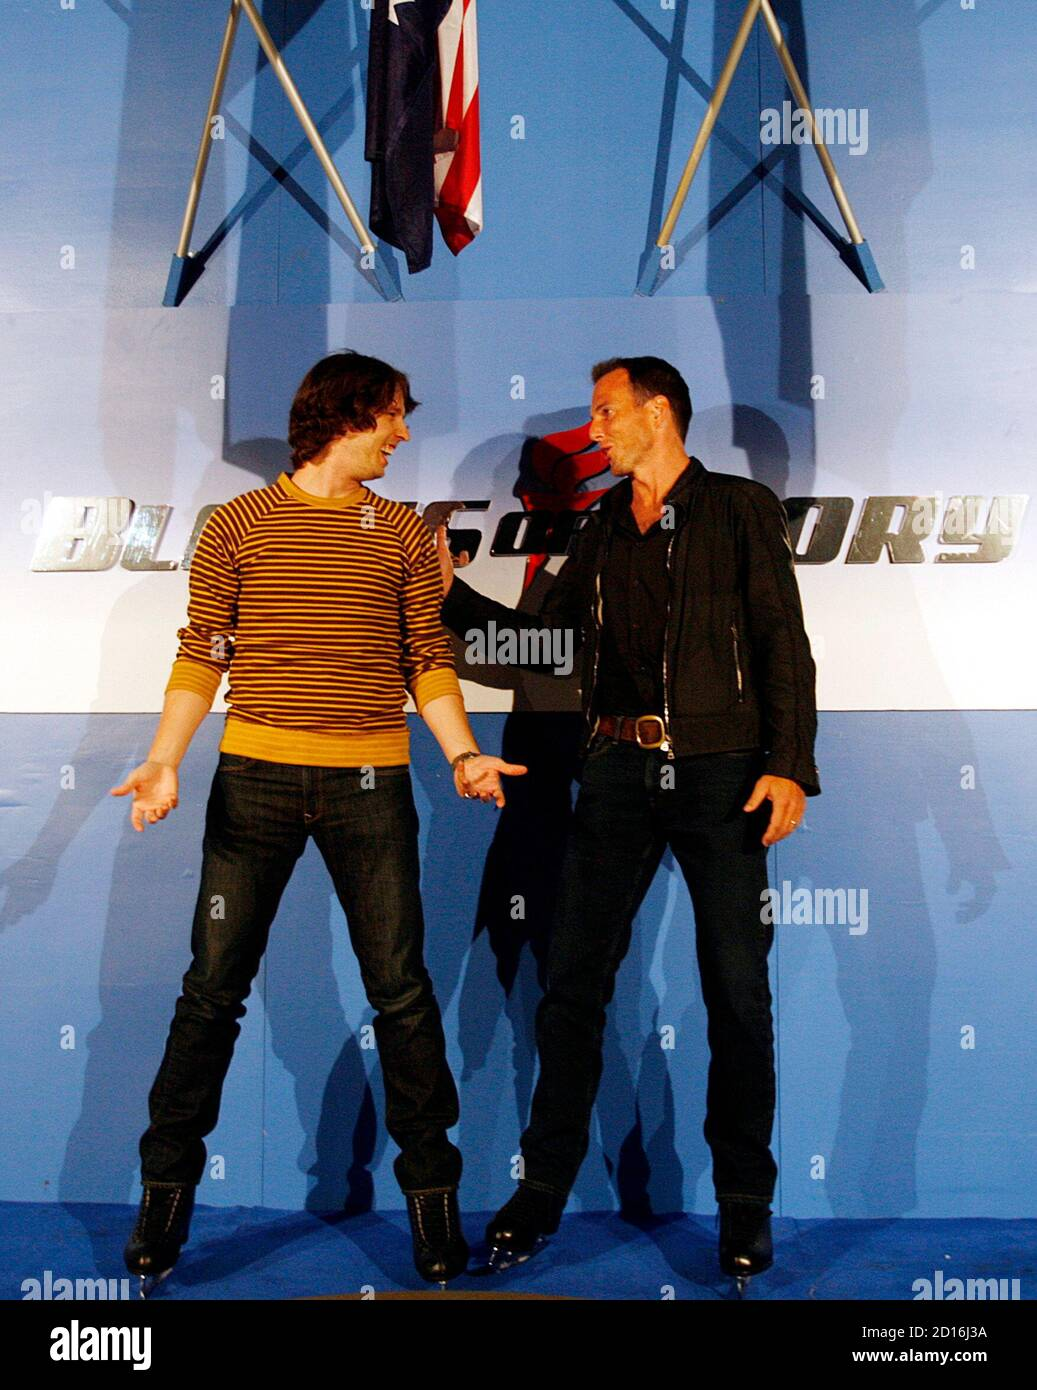 """Actors Jon Heder (L) and Will Arnett joke around at a media opportunity at an ice skating rink to promote their film """"Blades of Glory"""" in Sydney June 6, 2007.         REUTERS/Tim Wimborne     (AUSTRALIA) Banque D'Images"""